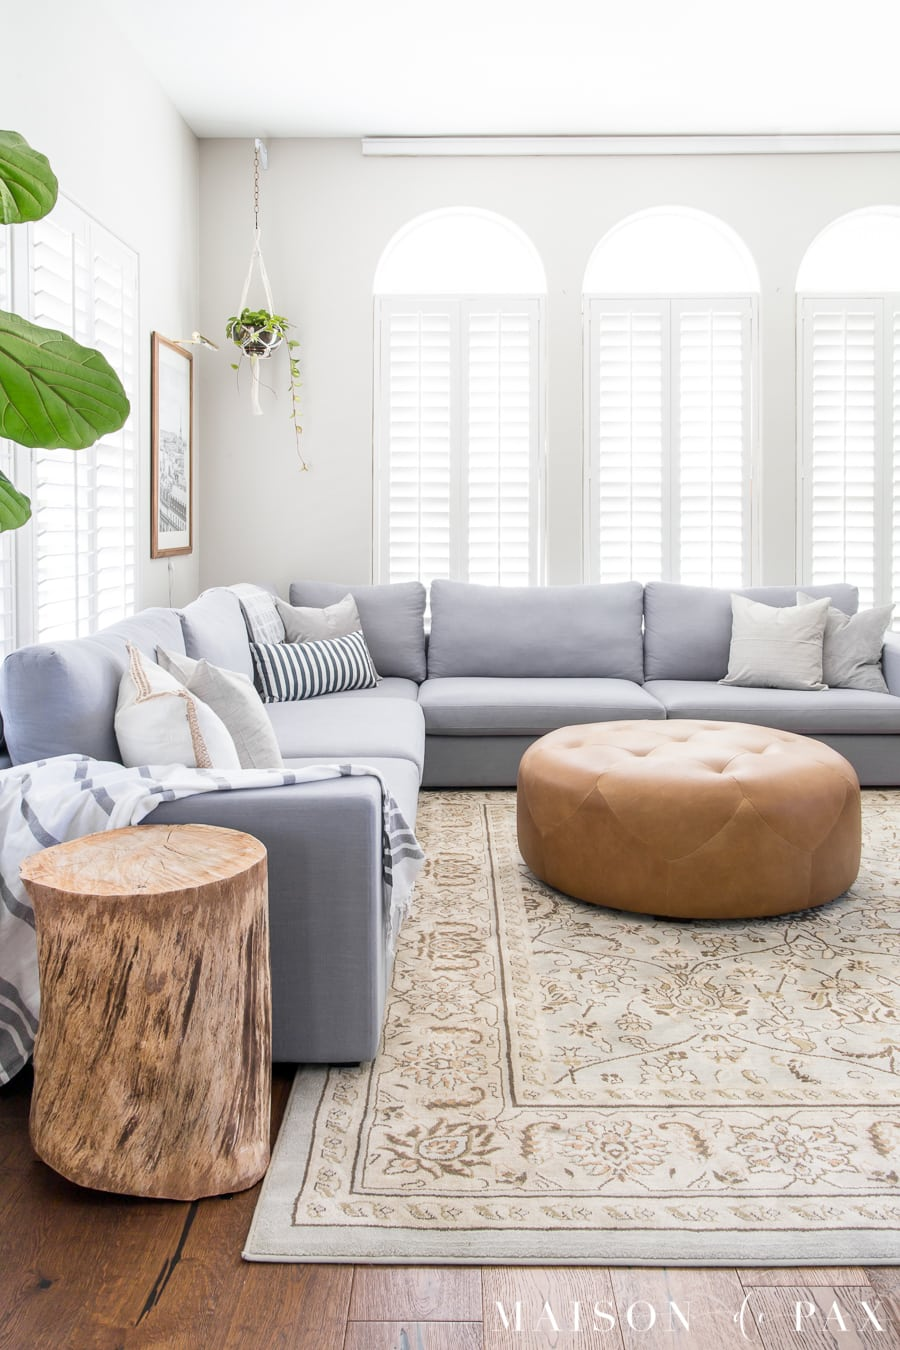 Awesome Wondering How To Decorate A Living Room With A Sectional? Get 3 Essential  Tips To